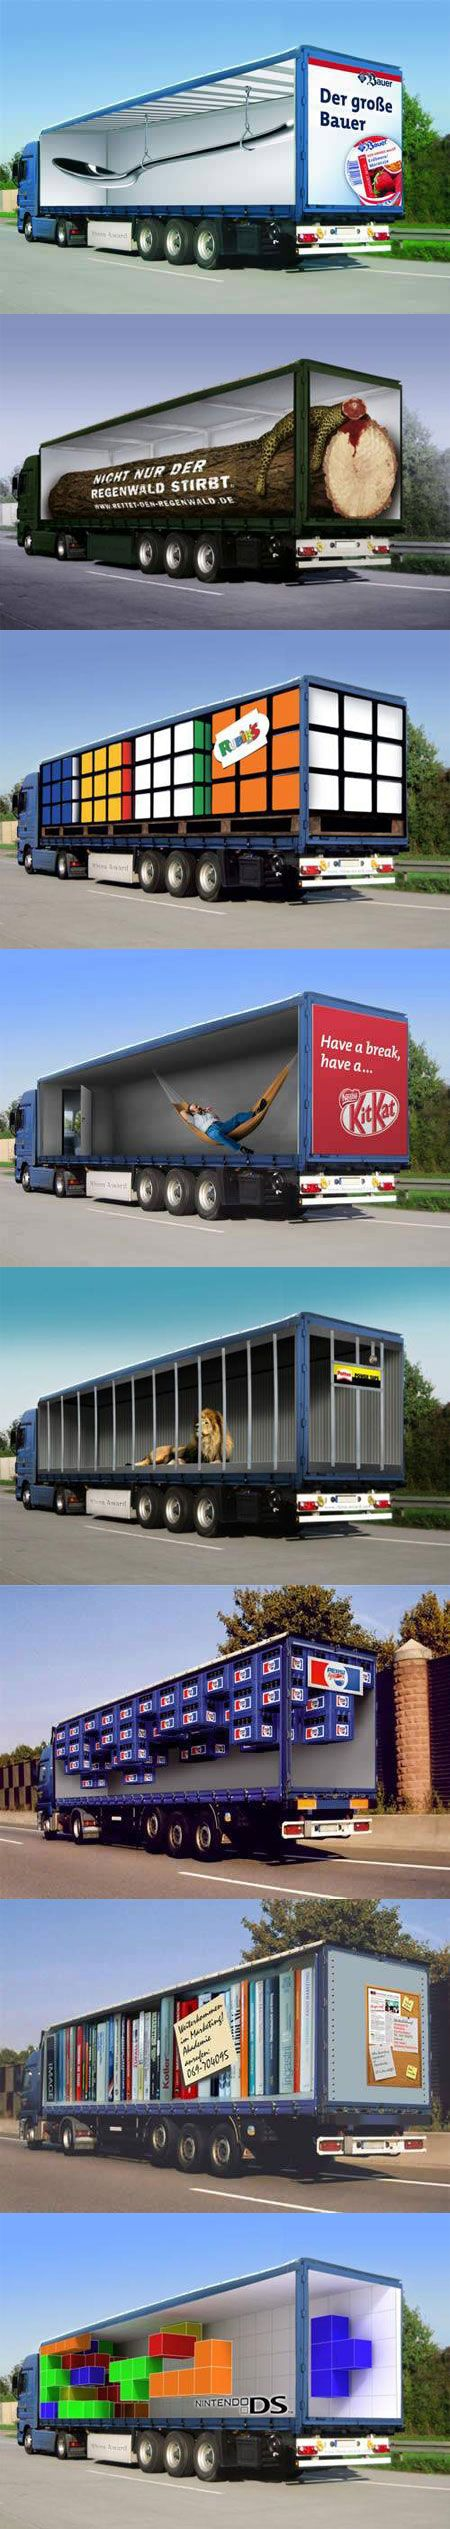 Creative Truck Advertisements - AWESOME, although if i saw one i might tail the truck ;)